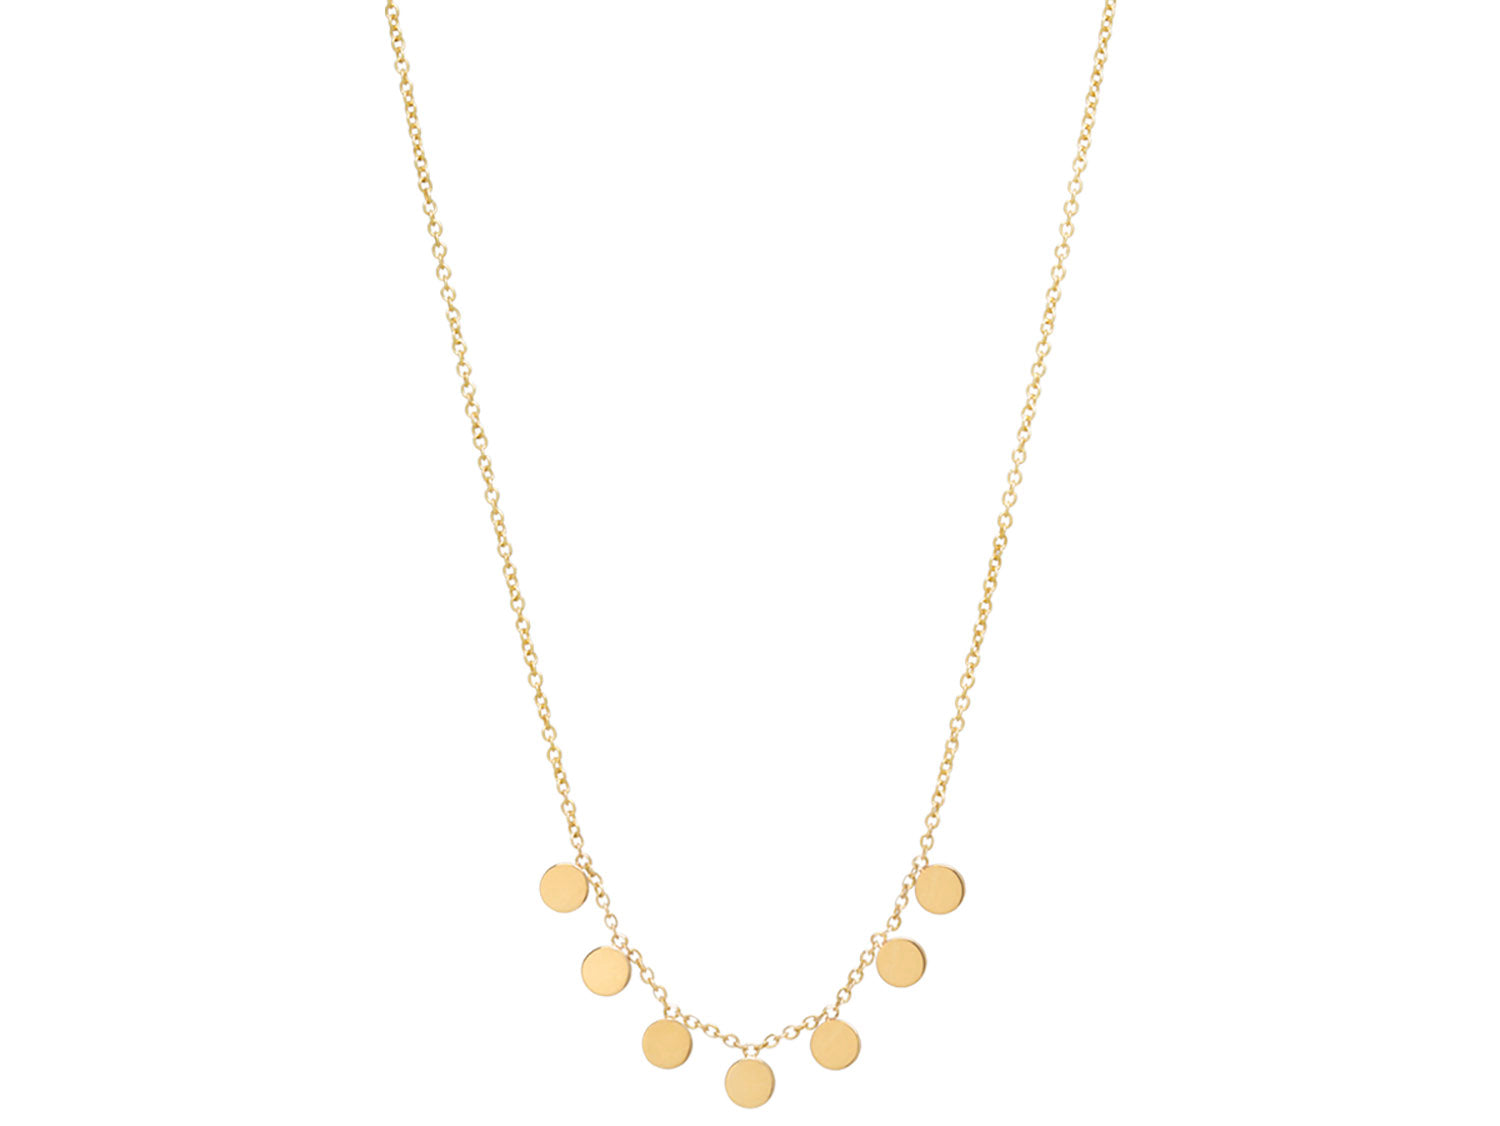 Gold Dangling Disc Necklace